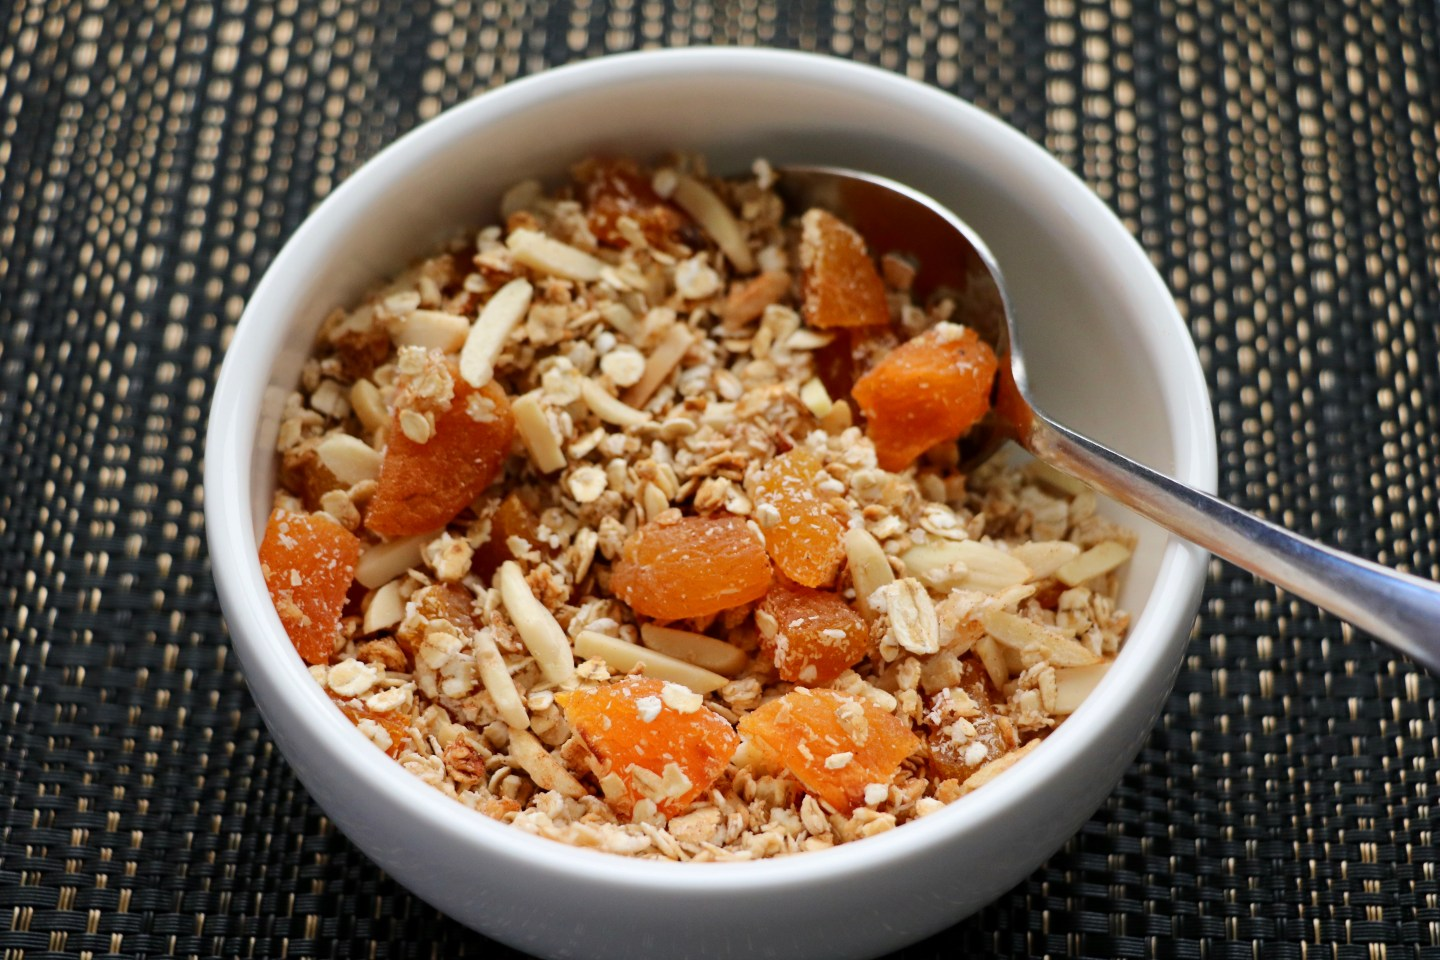 Apricot and Almond Muesli Recipe